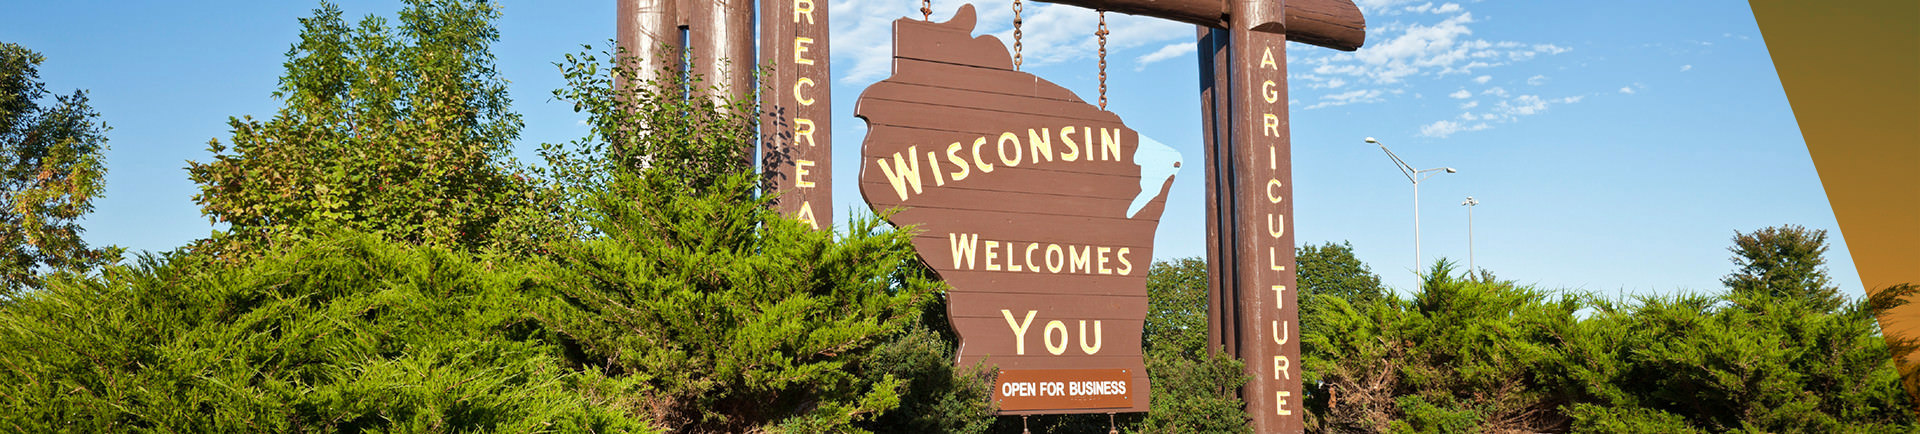 WEA Trust Wisconsin Health Insurance Plans & Products